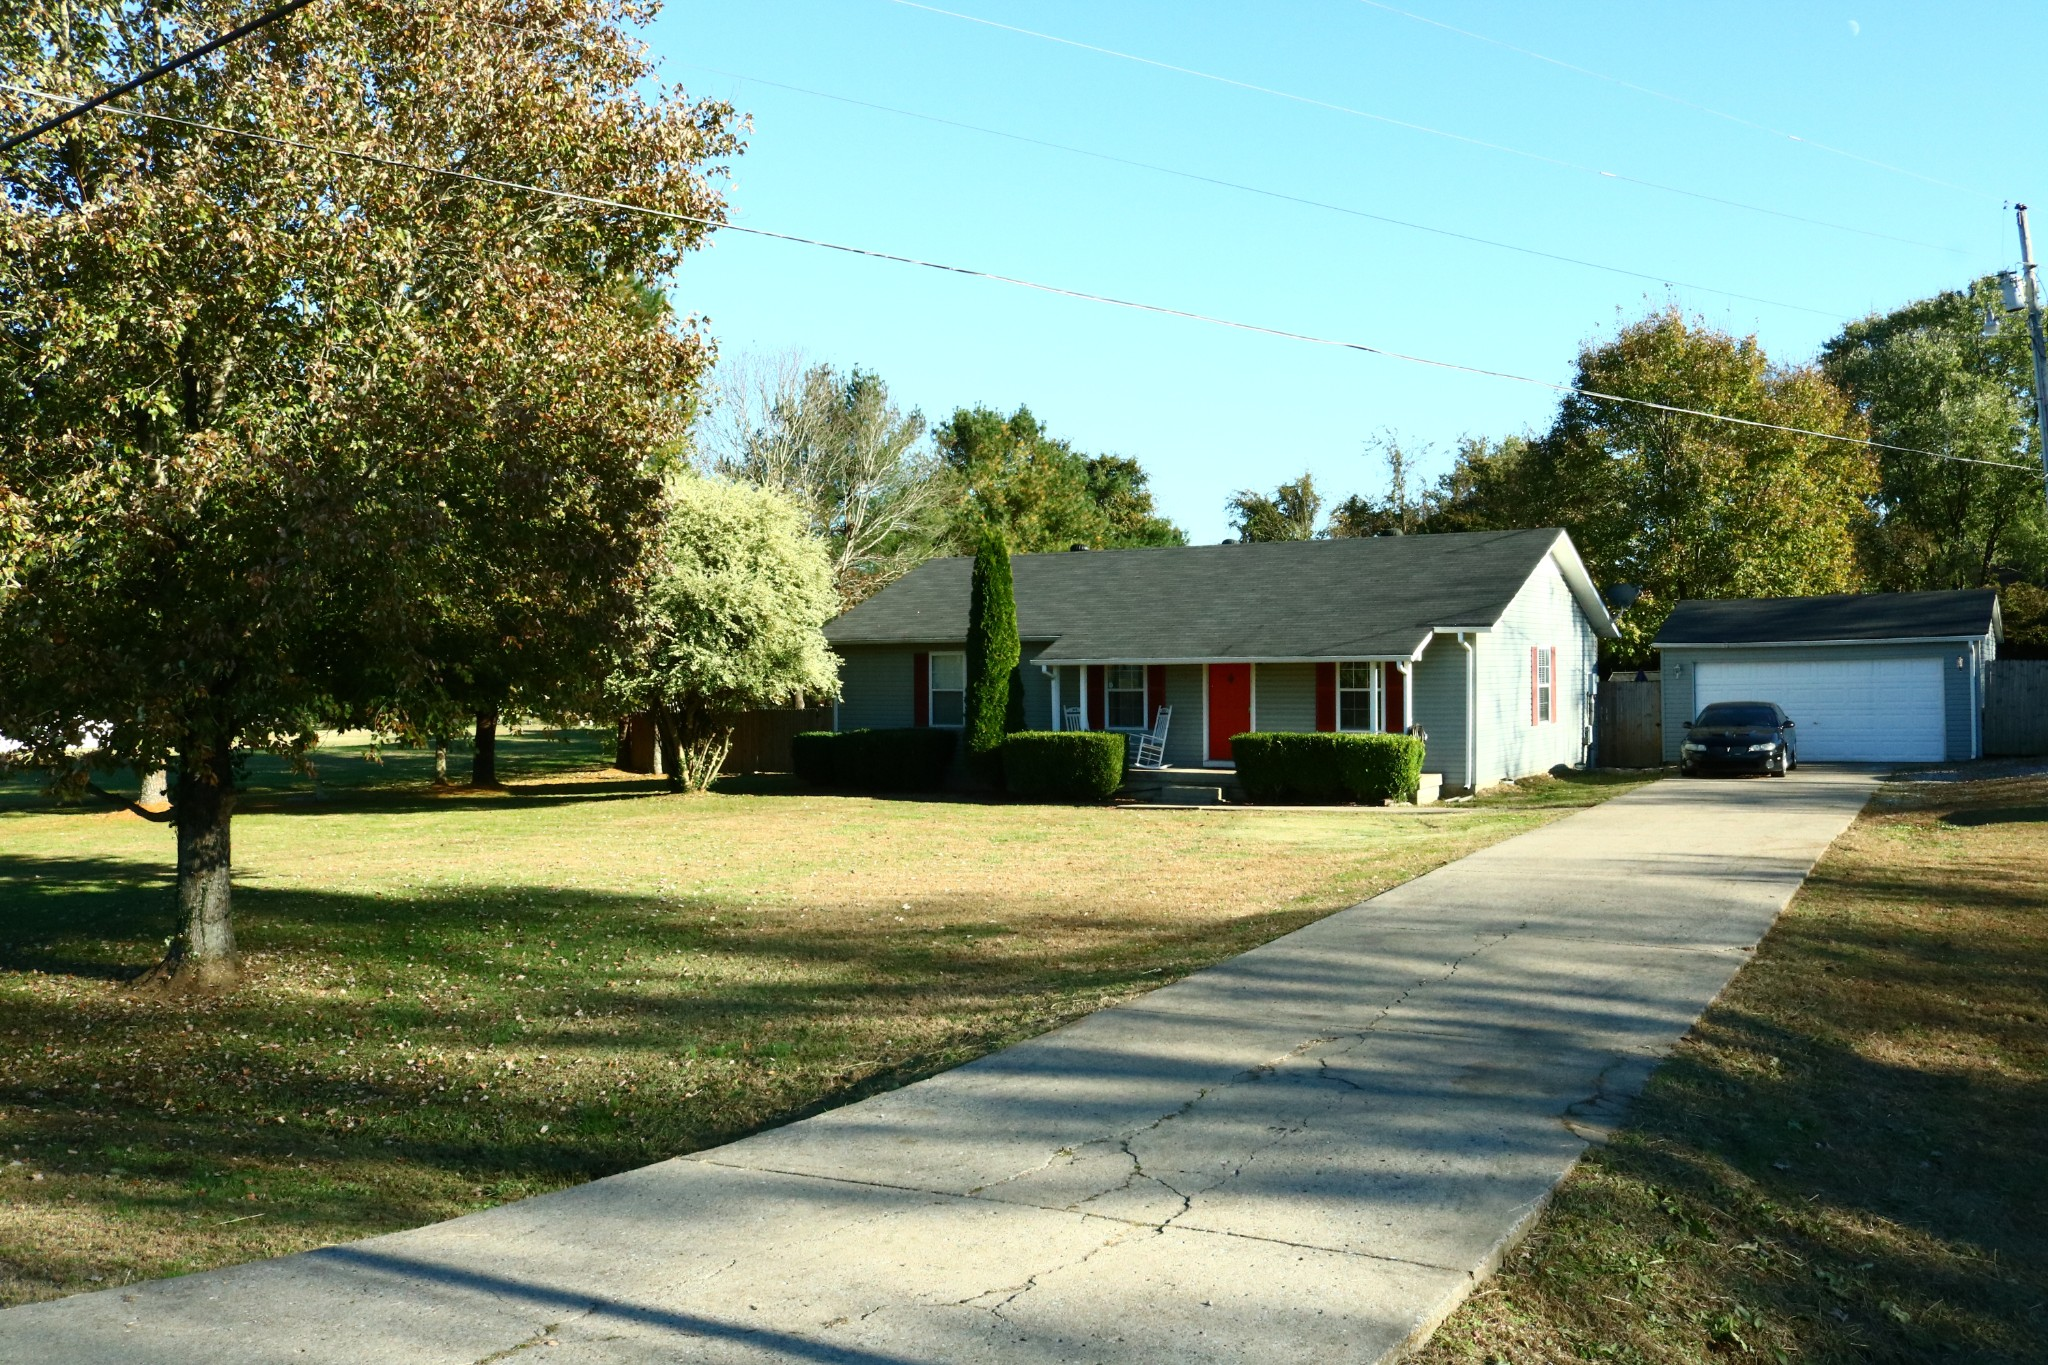 $205,000 - 3Br/2Ba -  for Sale in Snaffles, Gallatin